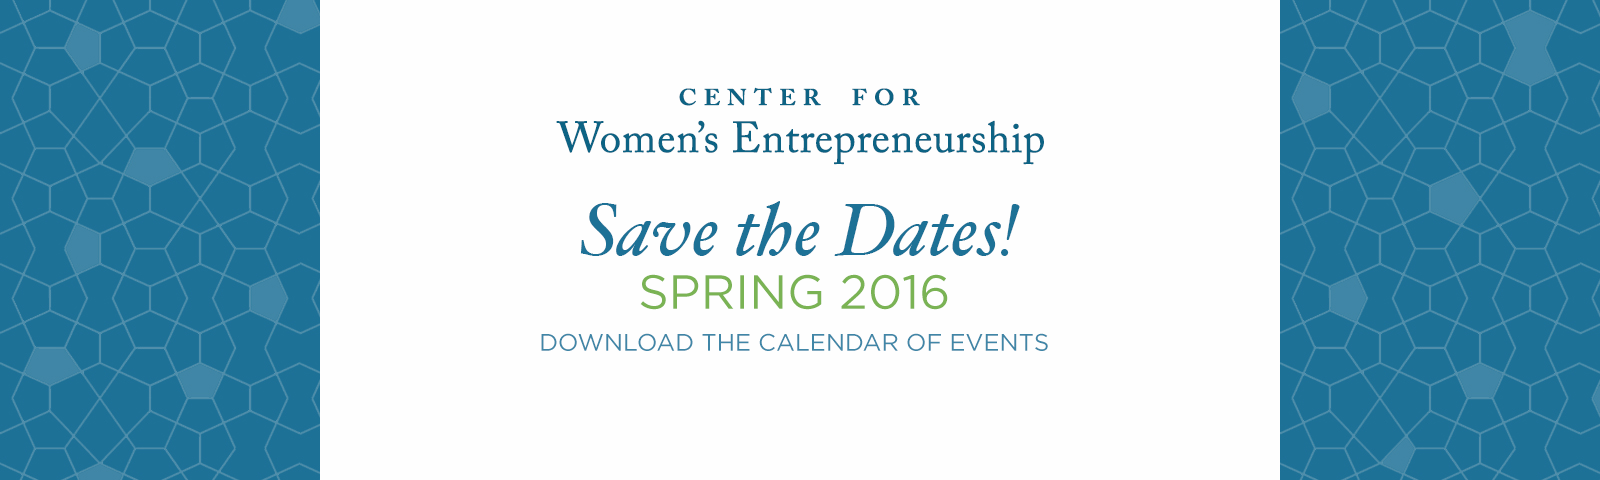 Save the Date - Spring 2016